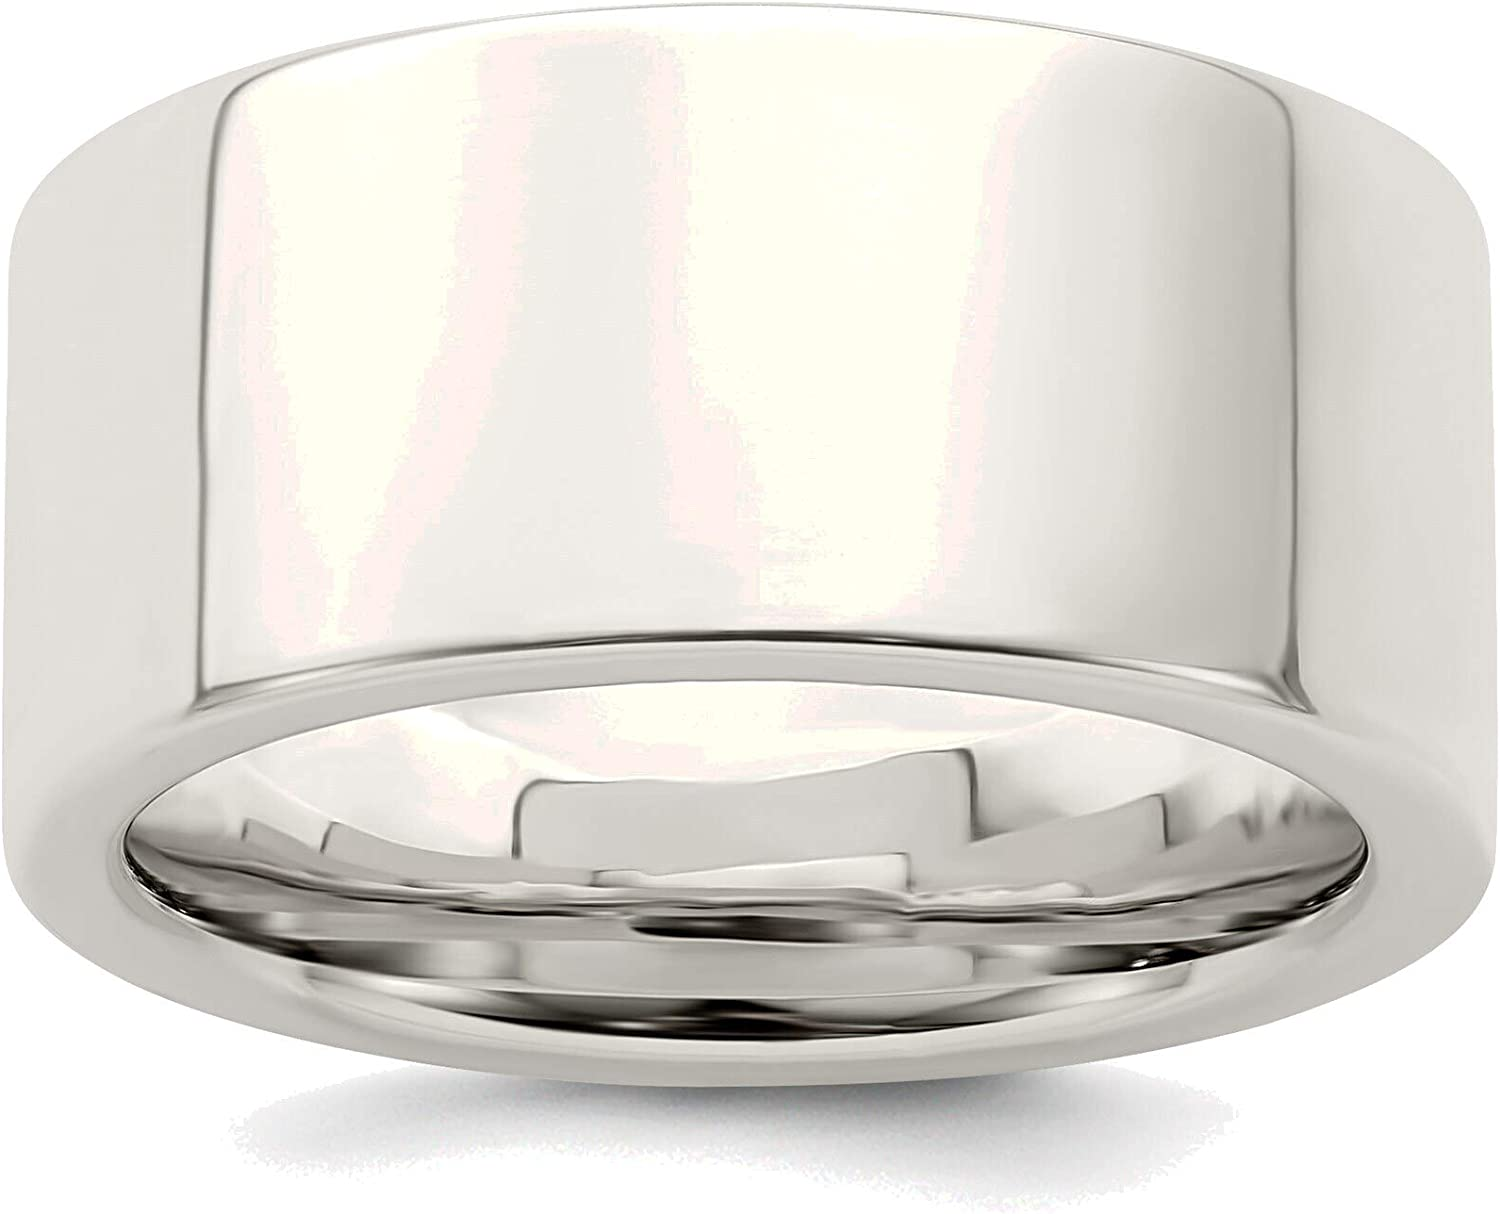 Bonyak Jewelry Max 46% OFF 10mm Comfort Los Angeles Mall Fit Flat Solid Sterl in 13 Size Band